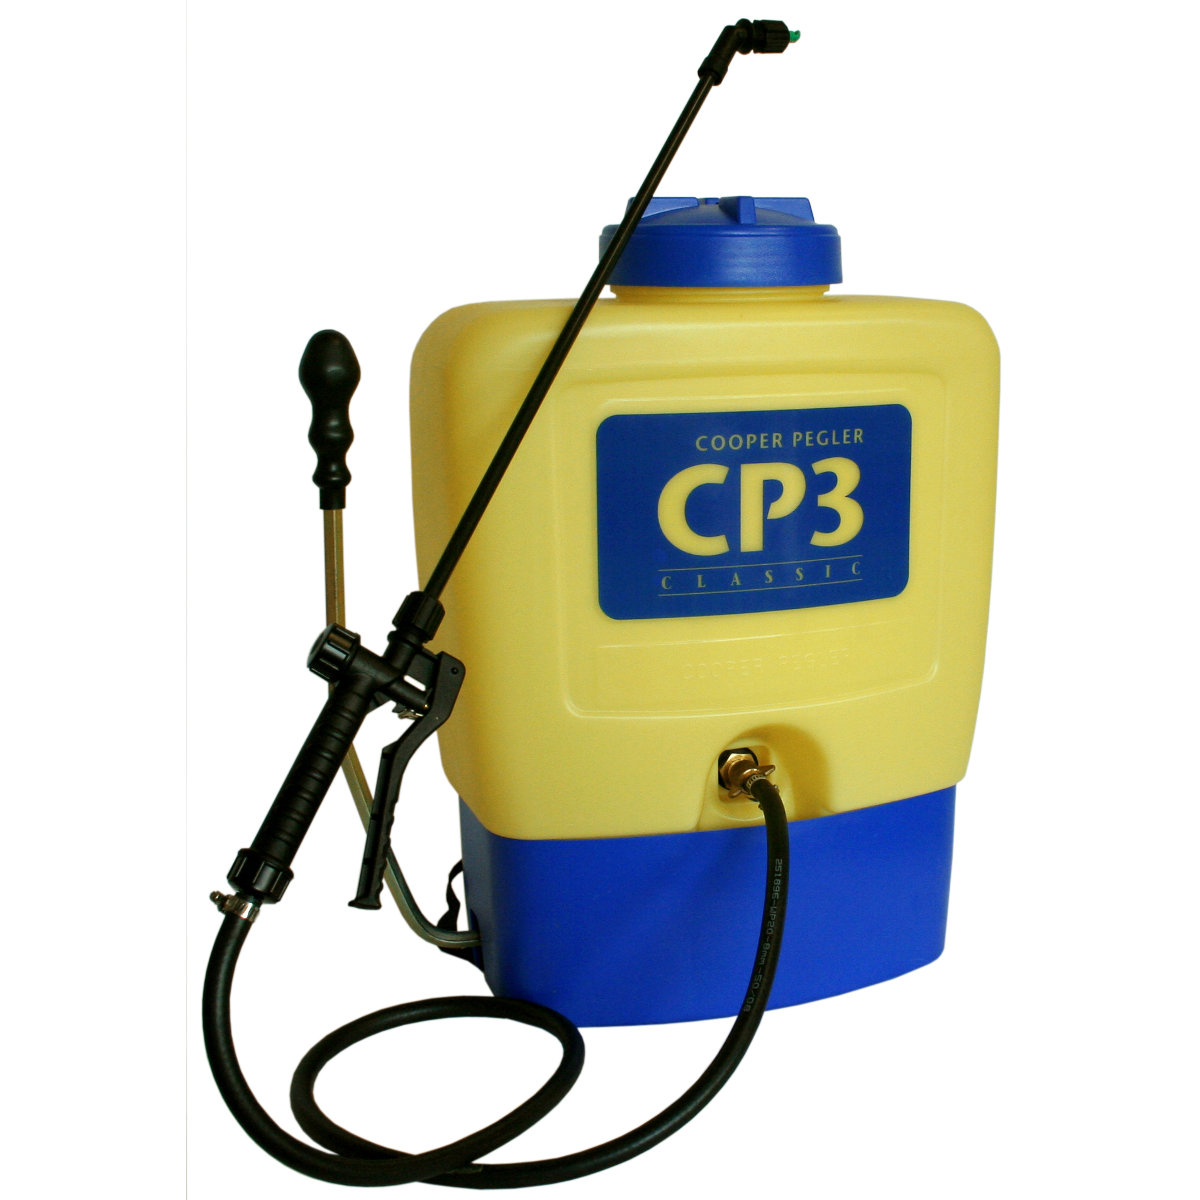 Backpack / Knapsack Sprayer